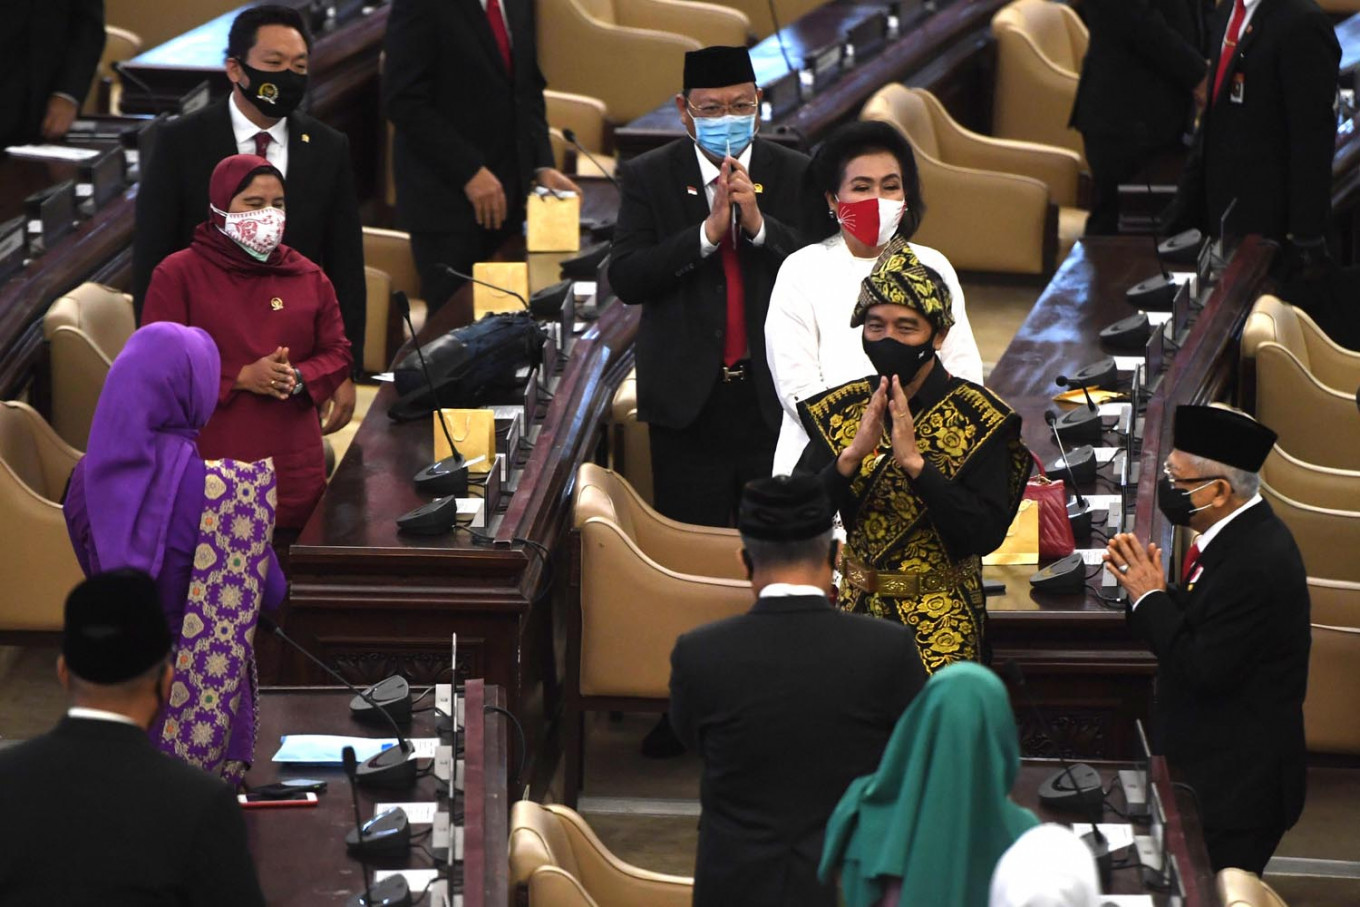 Jokowi reaffirms Indonesia's 'massive downstreaming' of natural resources